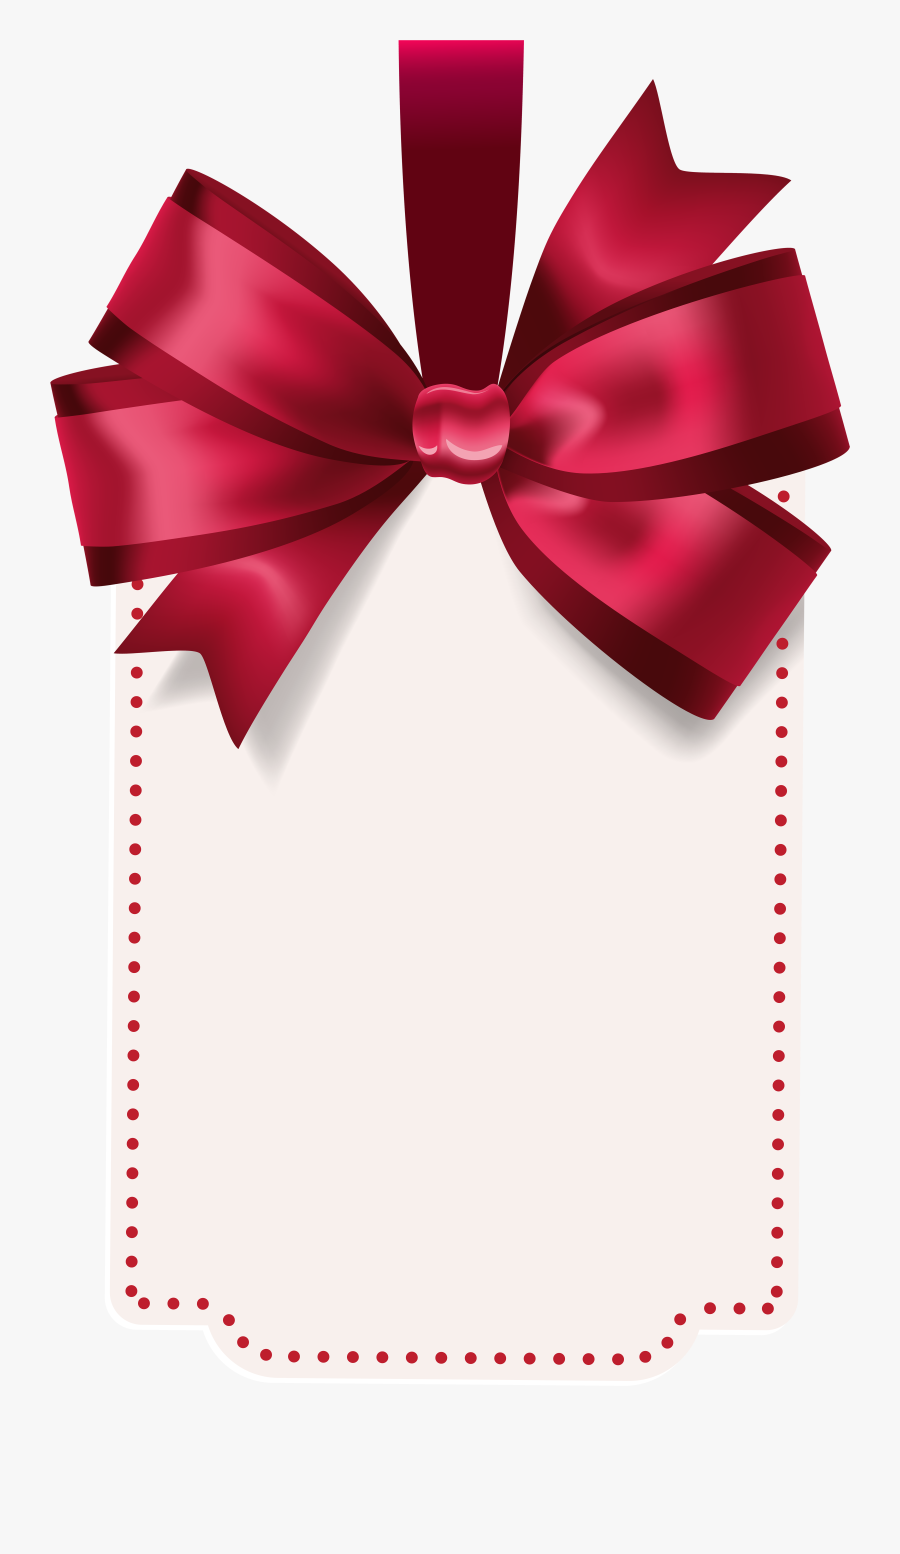 Christmas Price Tag Png, Transparent Clipart